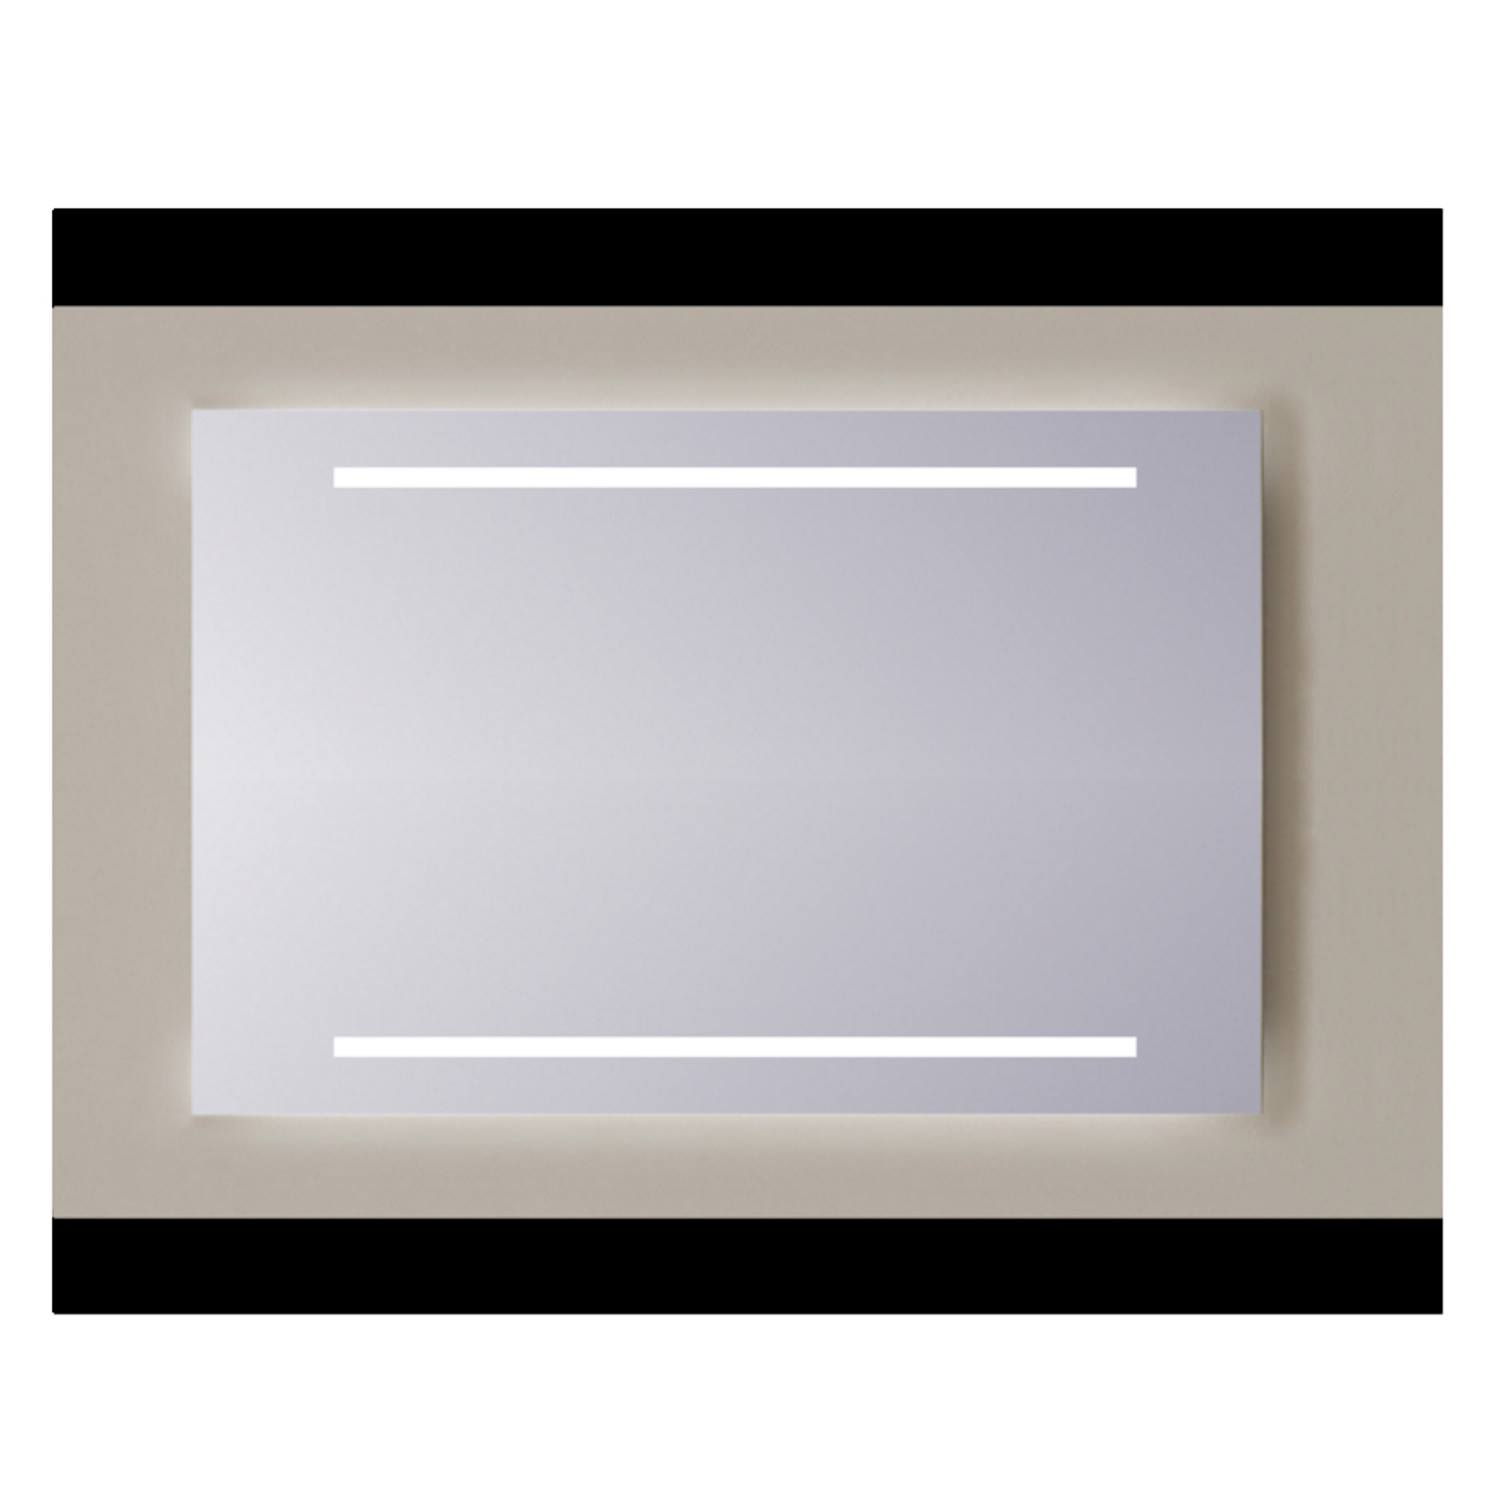 Spiegel Sanicare Q-mirrors Zonder Omlijsting 60 x 100 cm 2x Warm White LED PP Geslepen